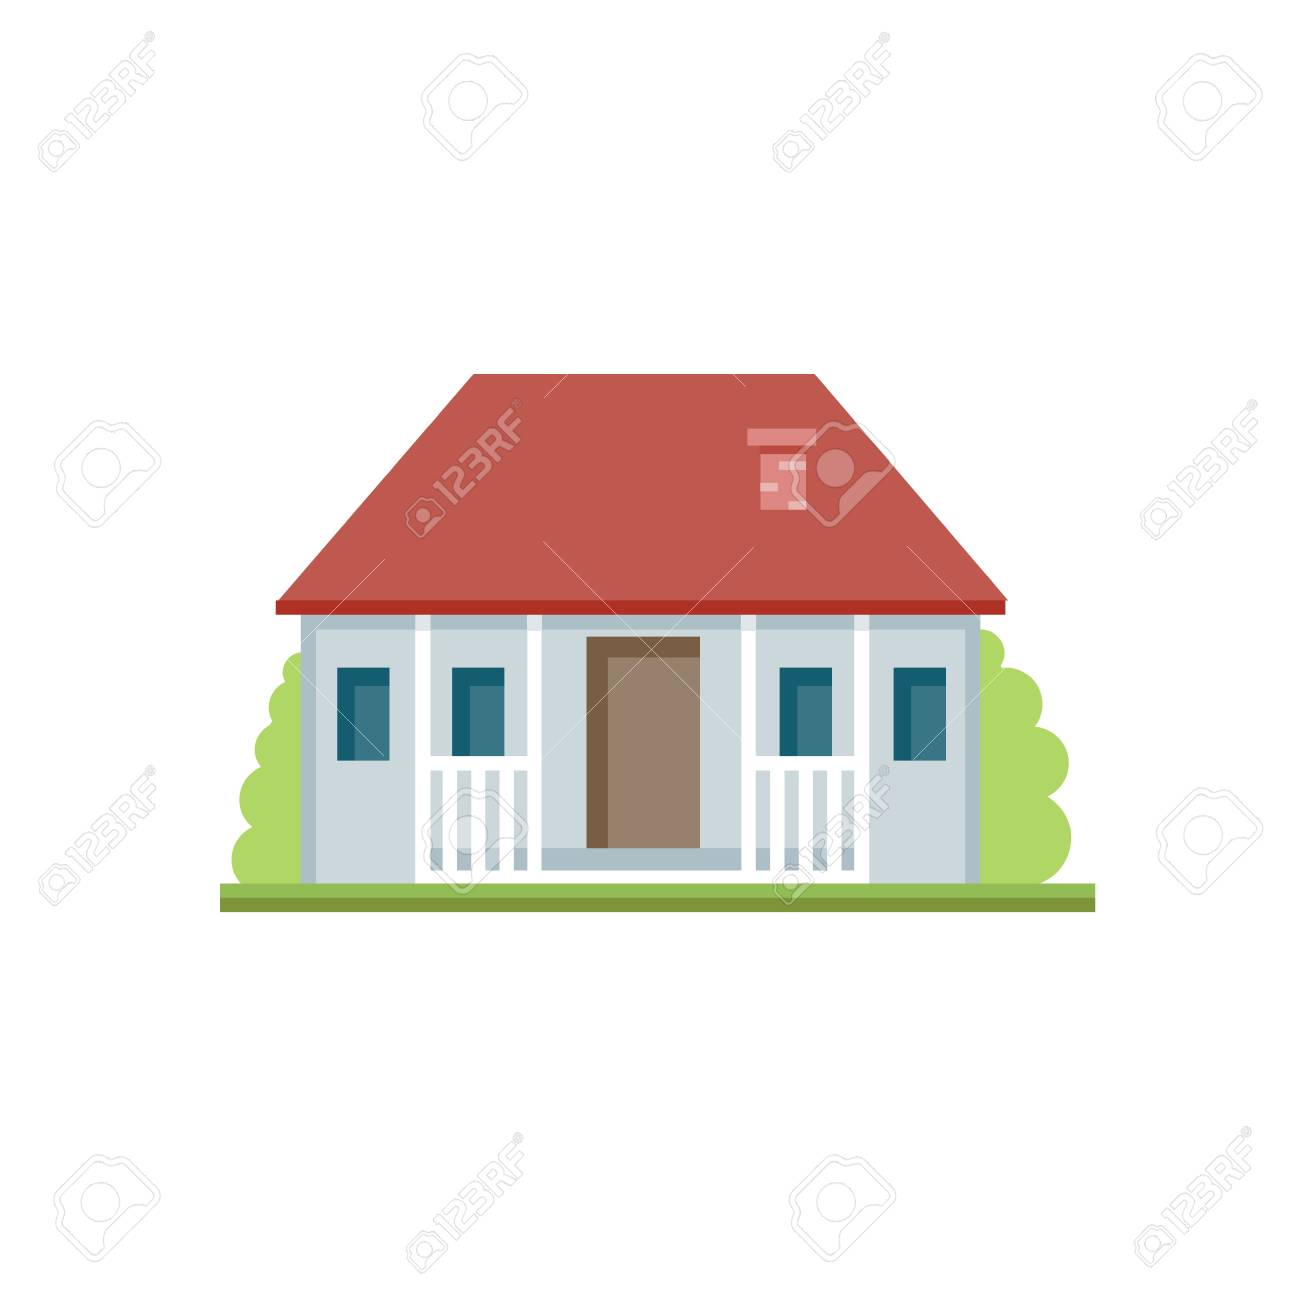 Flat colorful house front icon. Cottage with grey walls. Modern.. on front of house storage, front of house trees, front of house landscaping, front of house awards, front of house signs, front of house decor, front of house lighting,